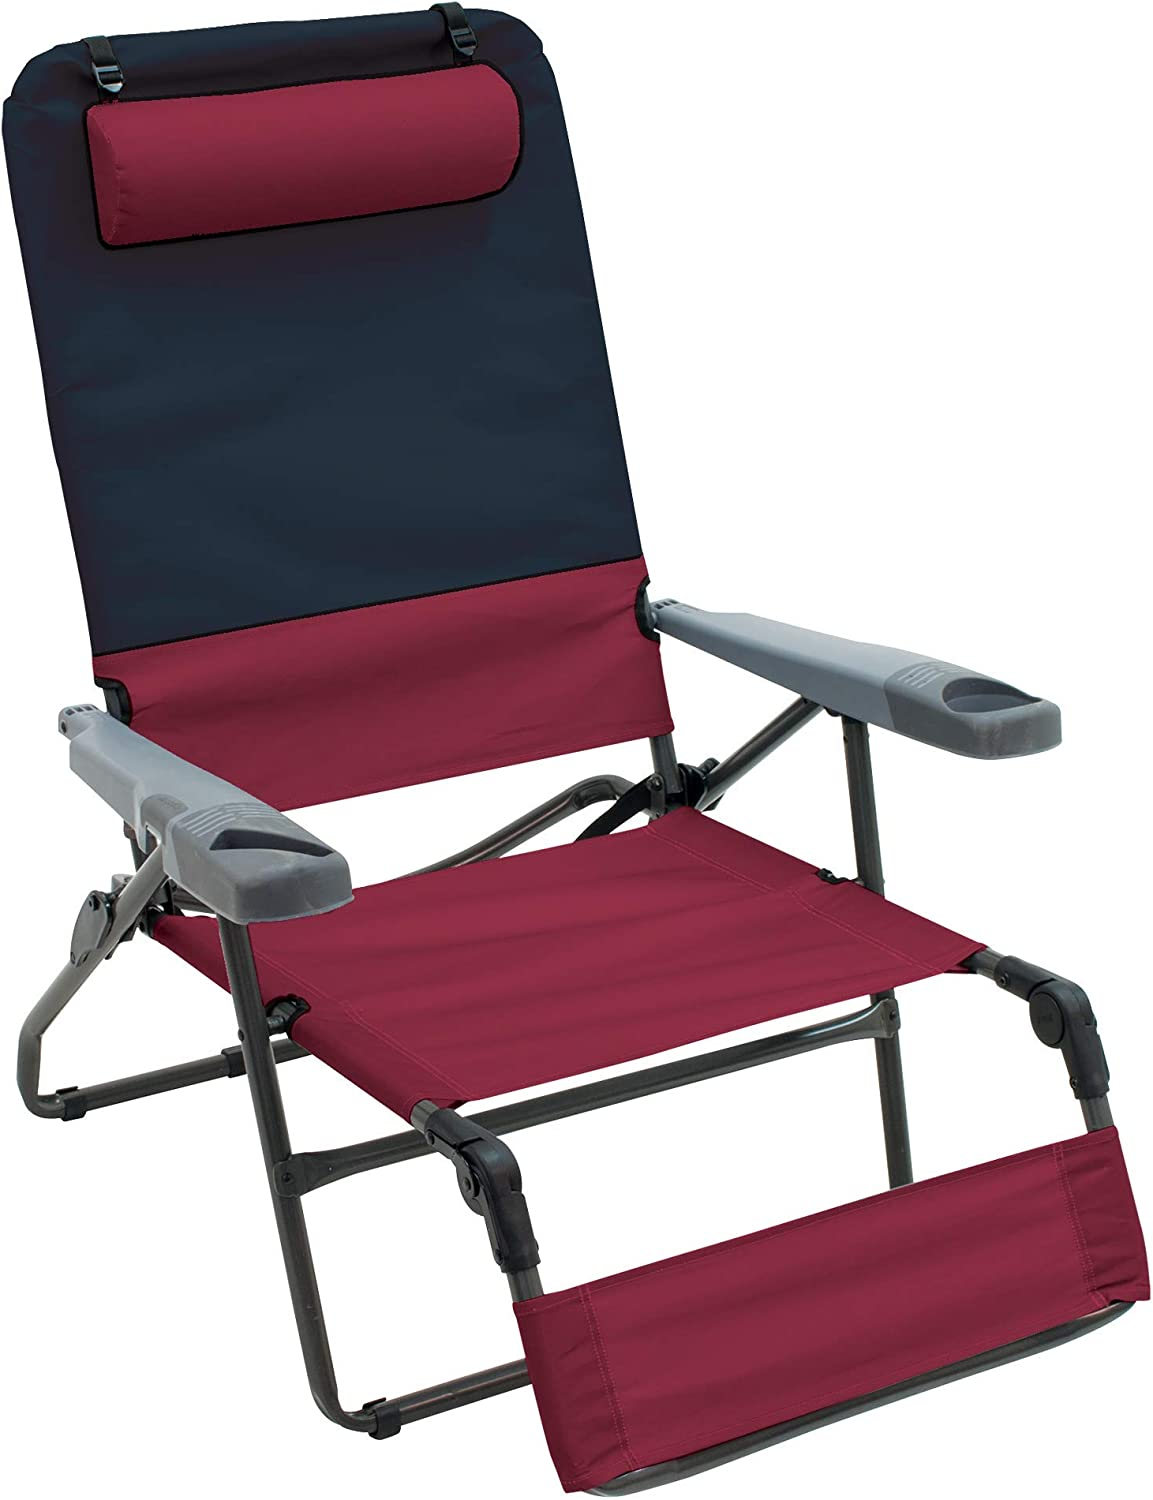 "Rio Brands Gear 4-Position Ottoman Lounge Extra Wide Camping Chair - Charcoal/Oxblood, 40.5"" x 30.25"" x 34.75"" (GR569-430-1)"